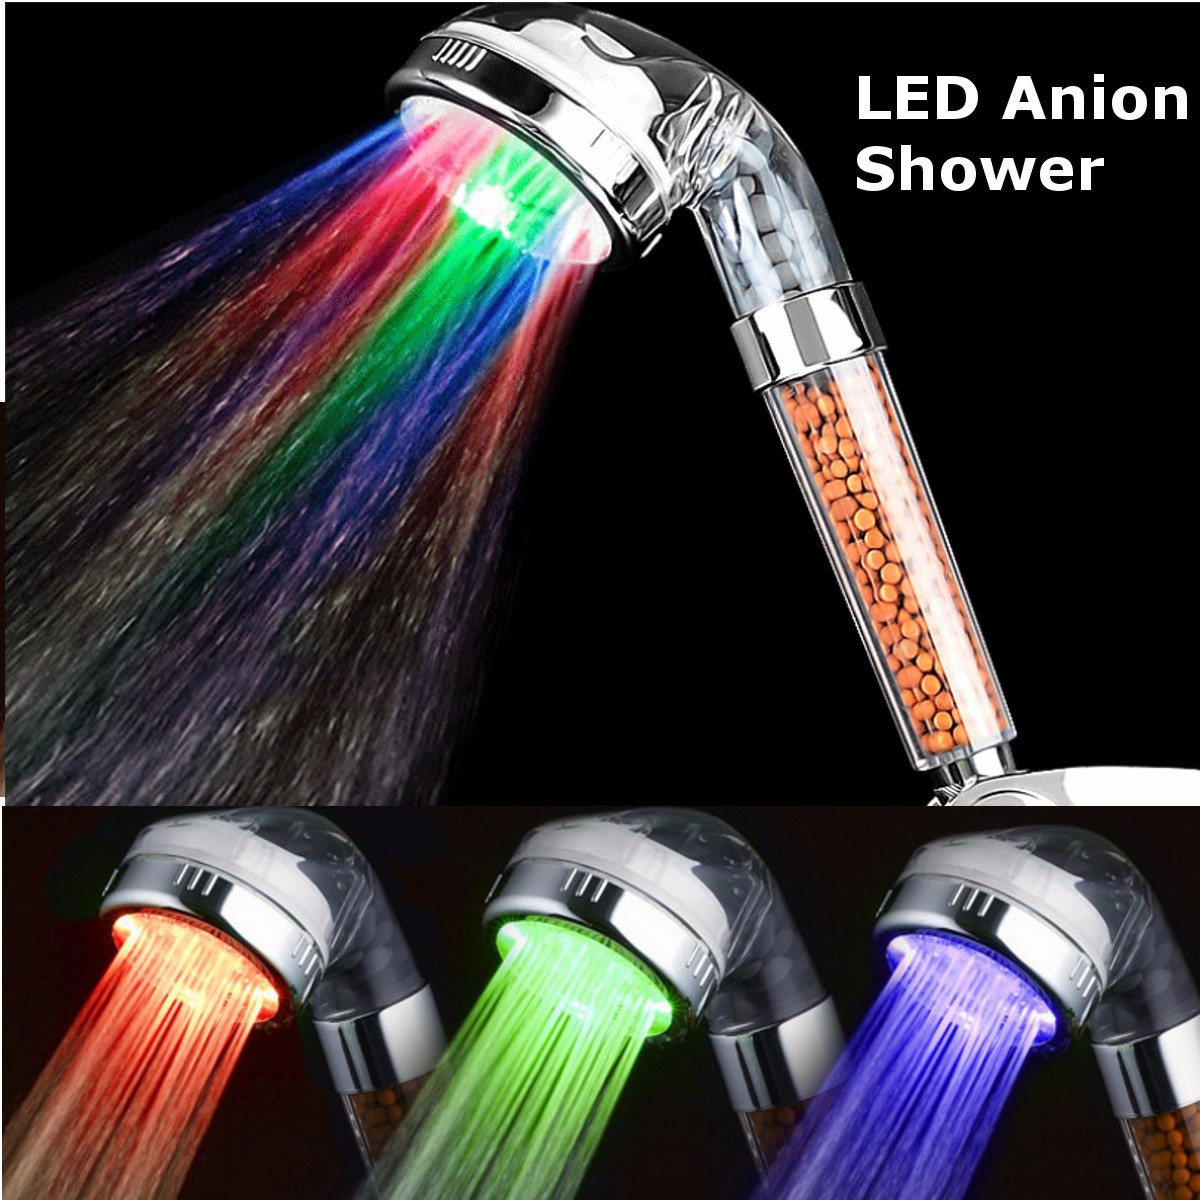 Xueqin Colorful LED Light Bath Showerhead Water Saving Anion SPA High Pressure Hand Held Bathroom Shower Head Filter Nozzle